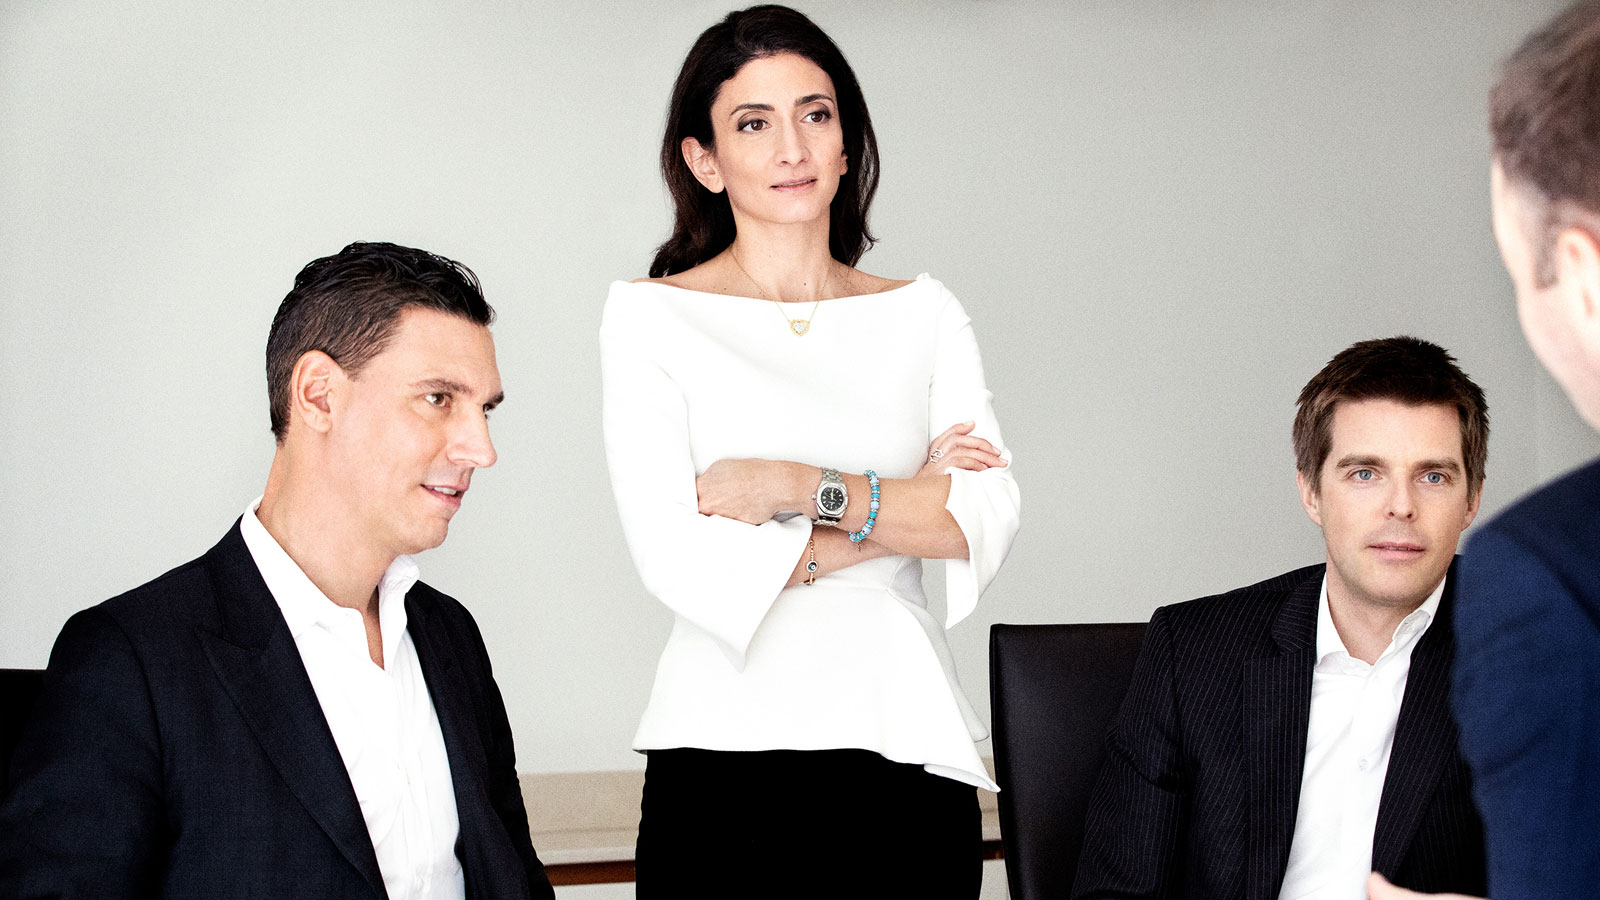 Partners Stefano Ferraresi, Tania Daguere and Christian Mogge meet in a conference room.